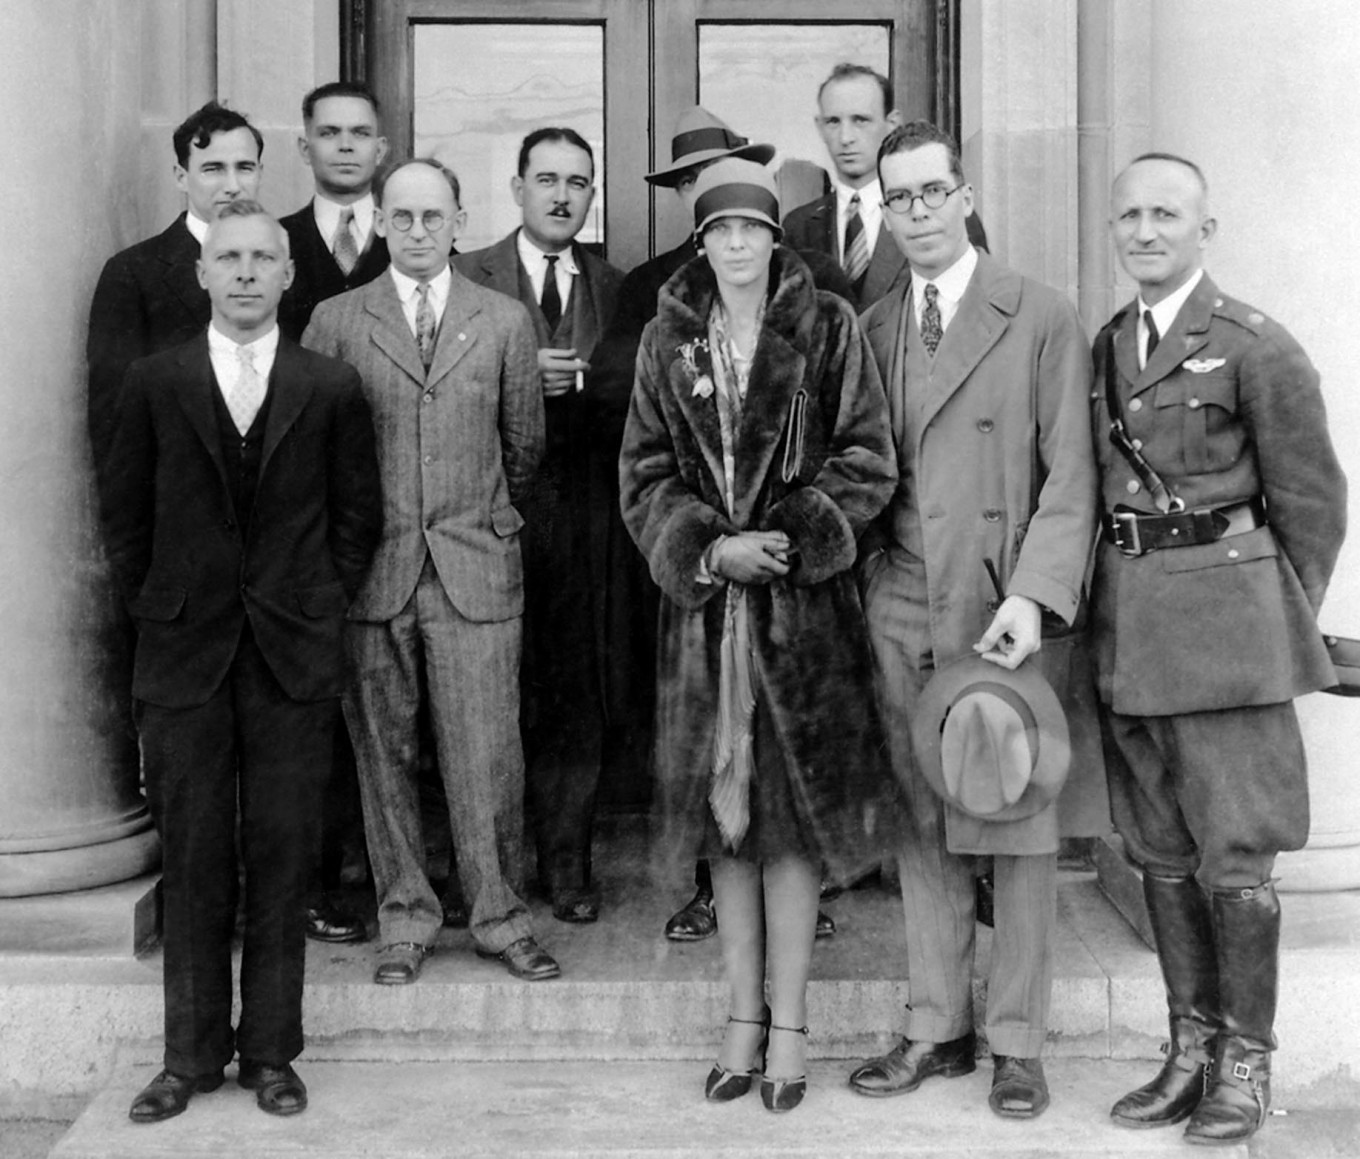 This November 1928 file photo released by NASA shows front row (L-R) E.A. Meyers, Elton Miller, Amelia Earhart, Henry Reid, and Lt. Col. Jacob W.S. Wuest. Back row (L-R) Carlton Kemper, Raymond Sharp, Thomas Carroll, (unknown person behind Earhart), and Fred Weick,during her tour of Langley in Virginia.